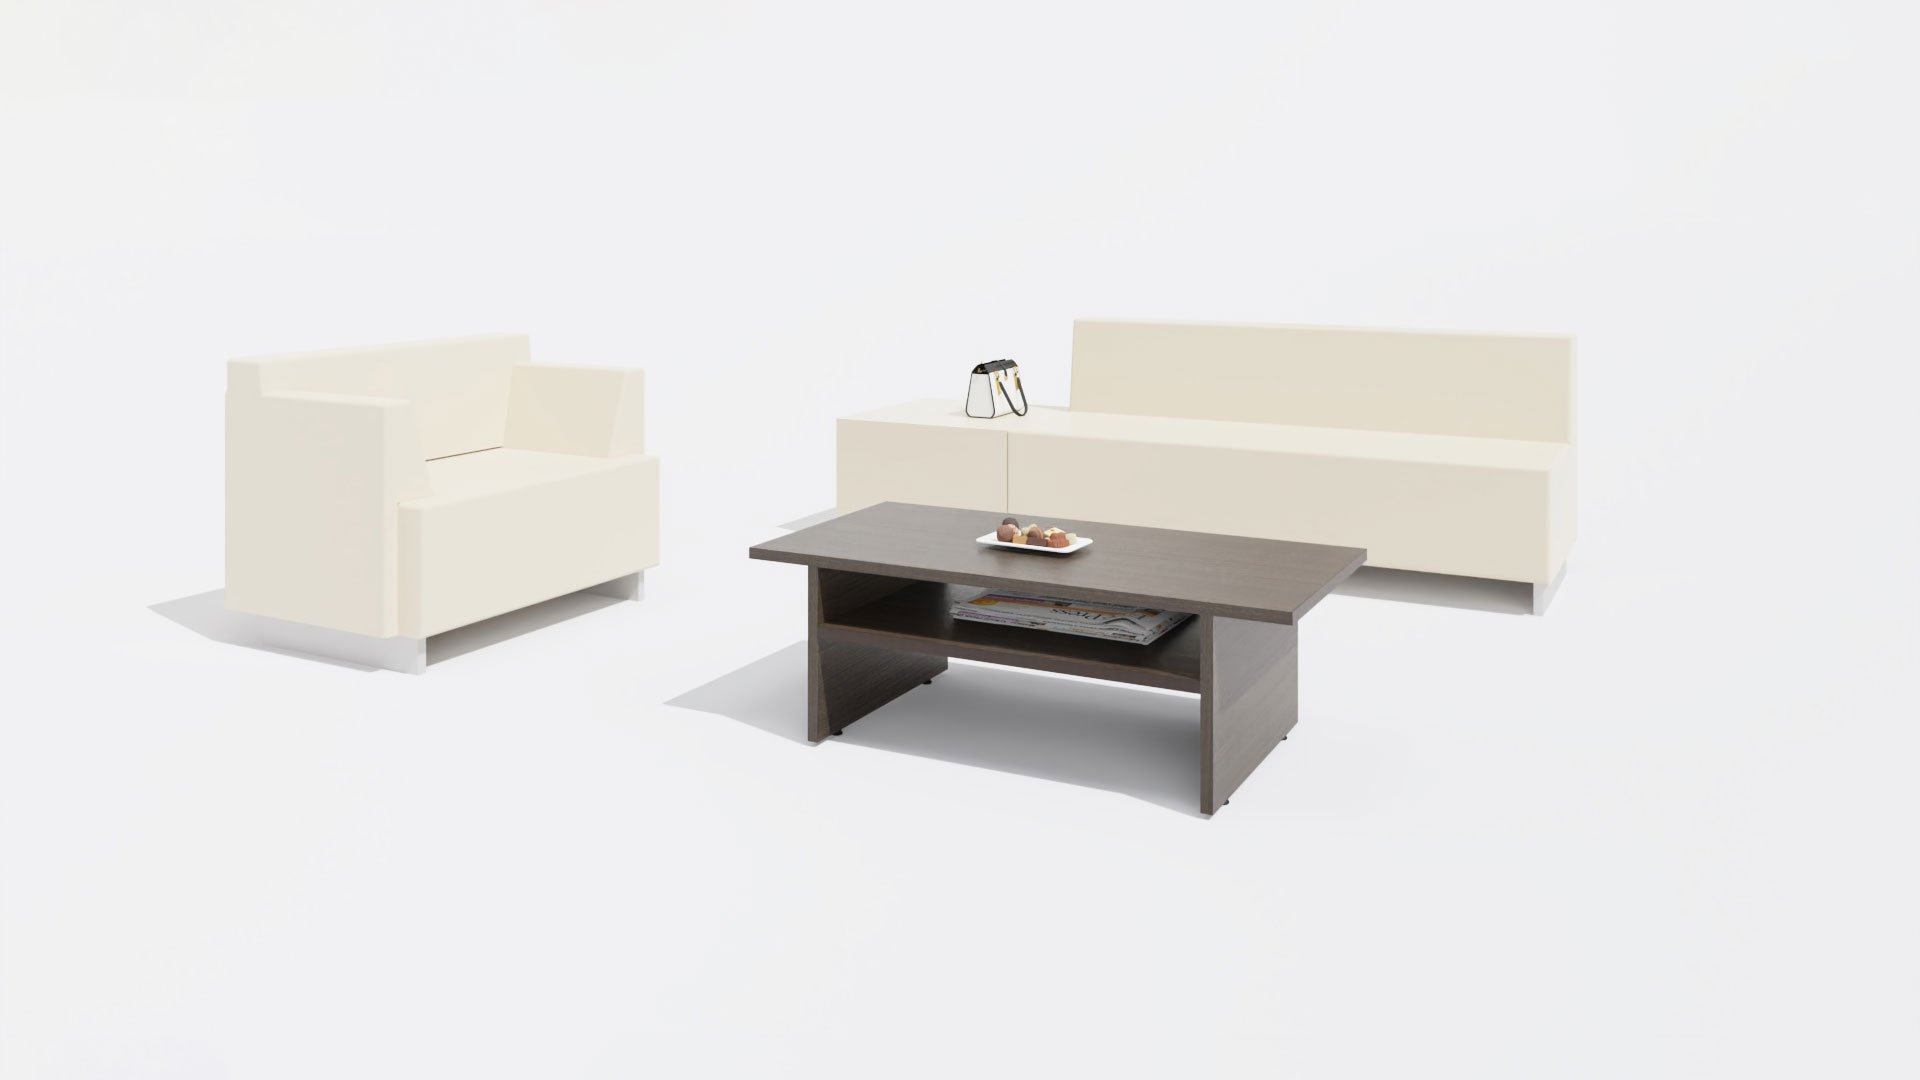 Rectangular Coffee Table 1655 with a Sofa and a Chair